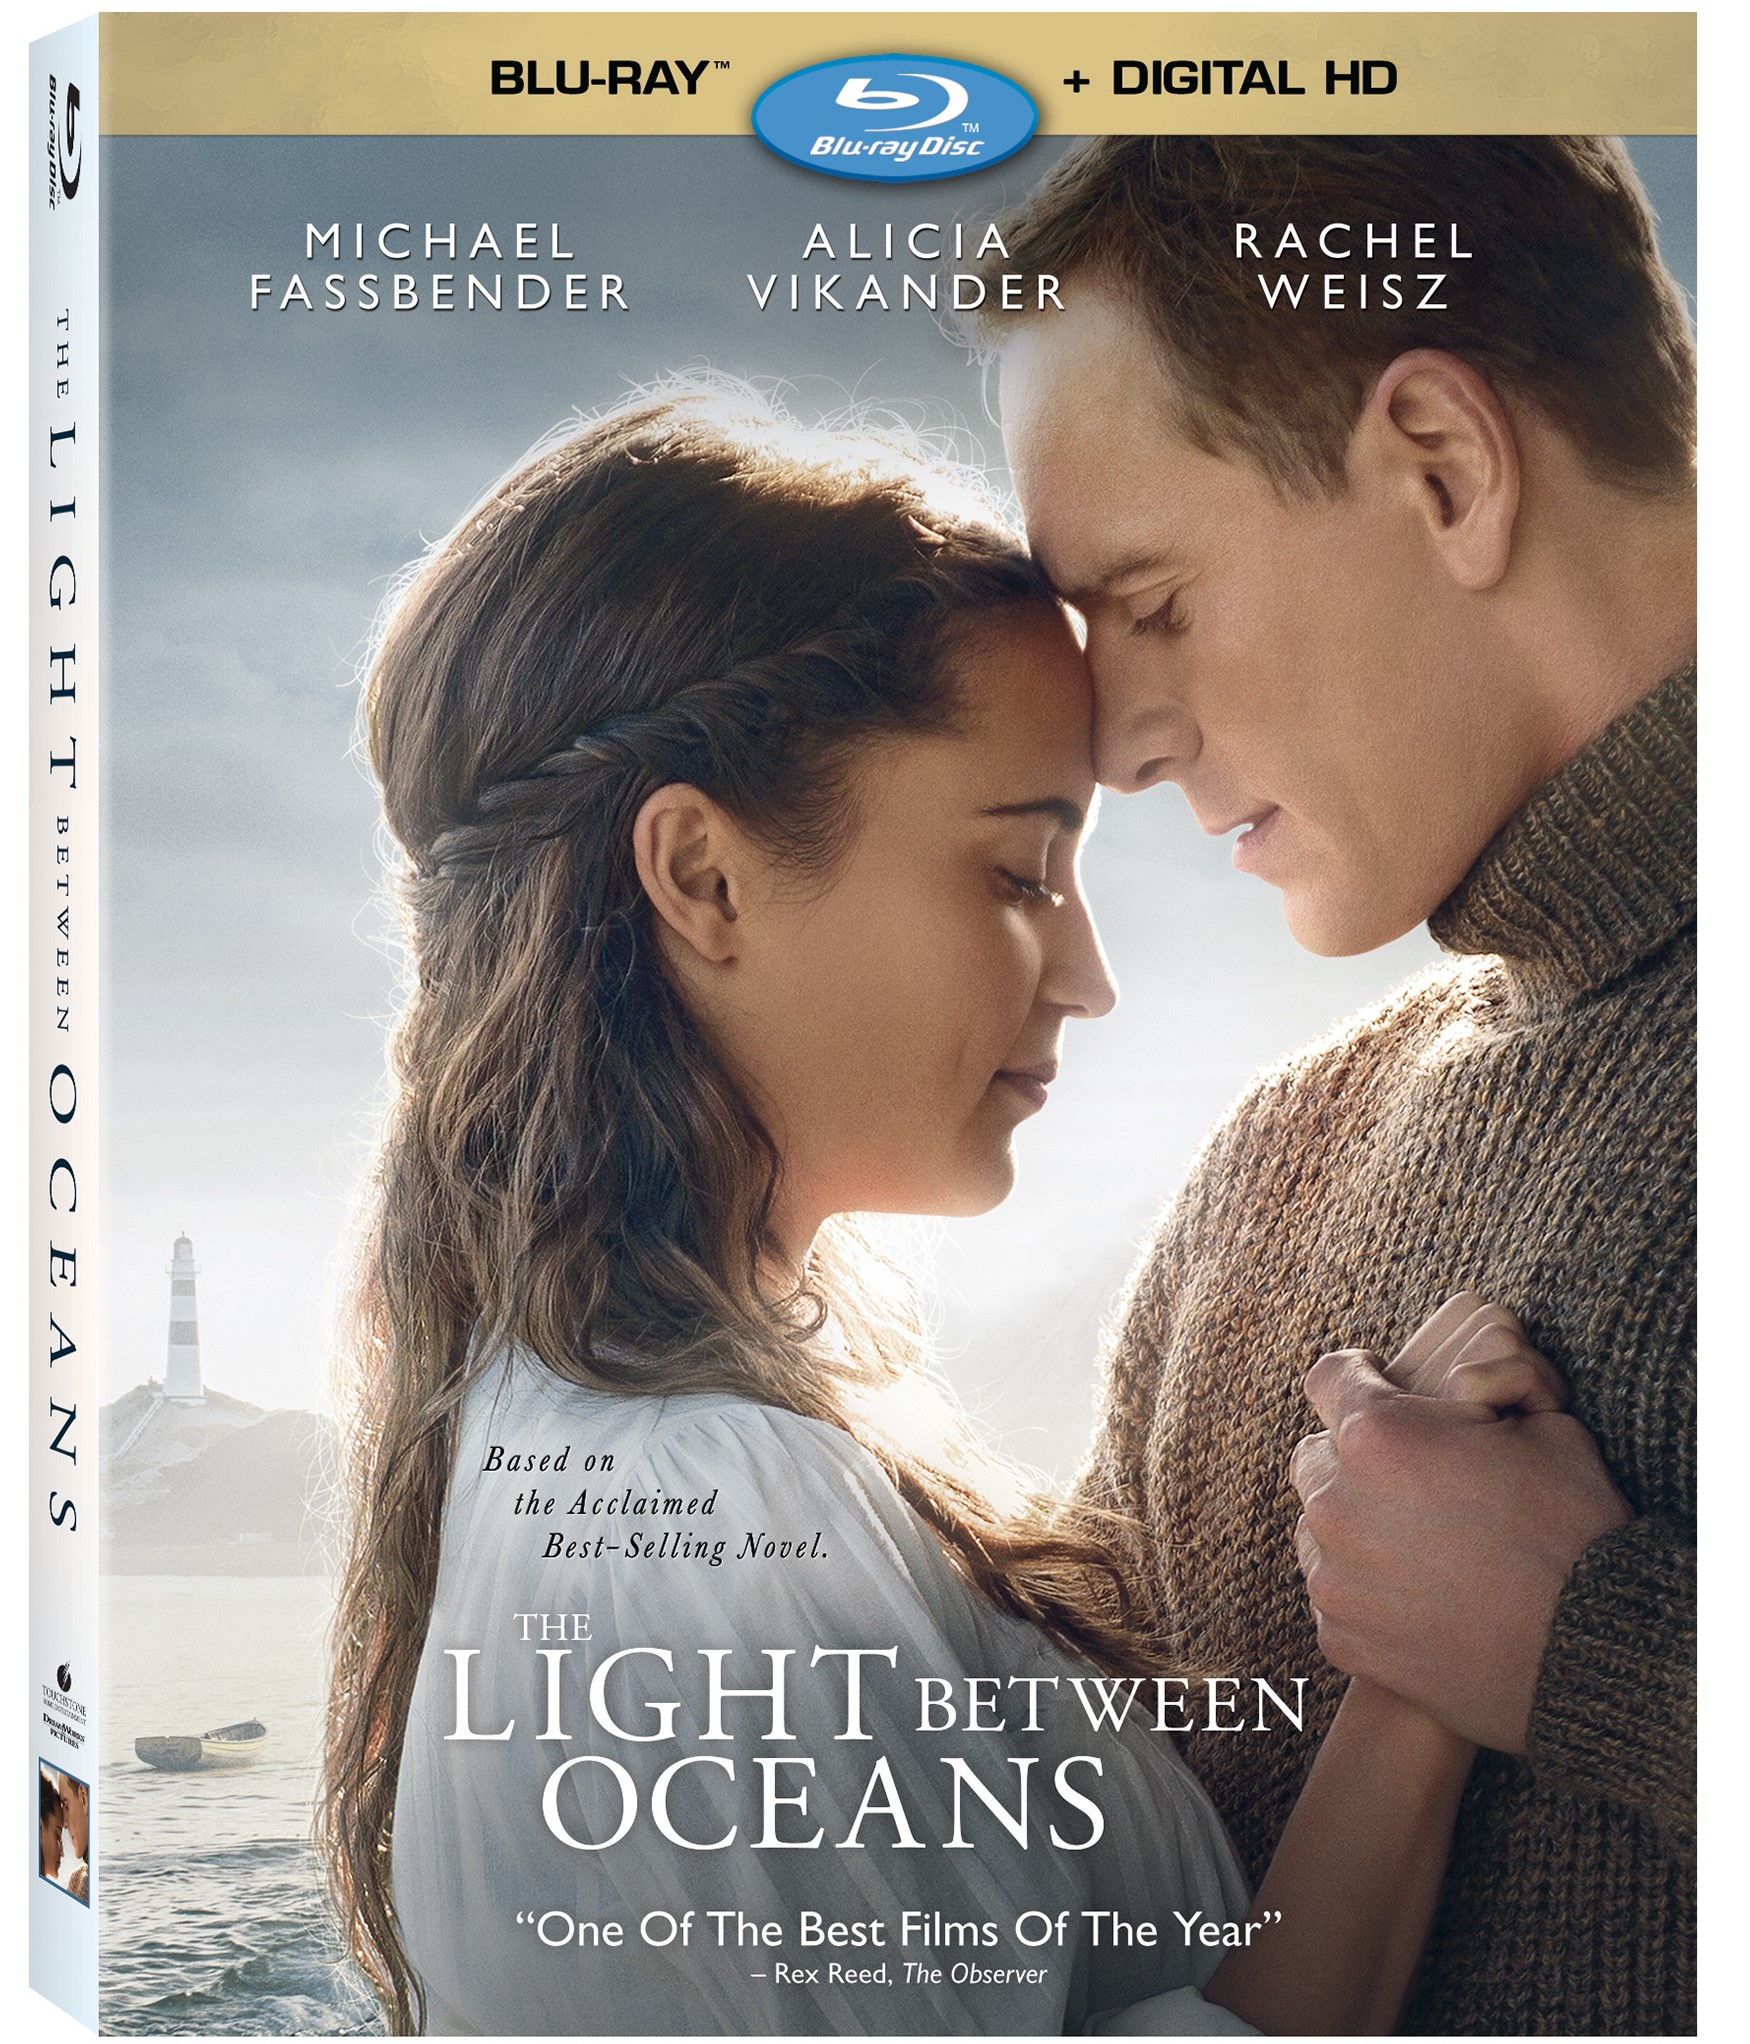 Light Between Oceans Blu-ray Review